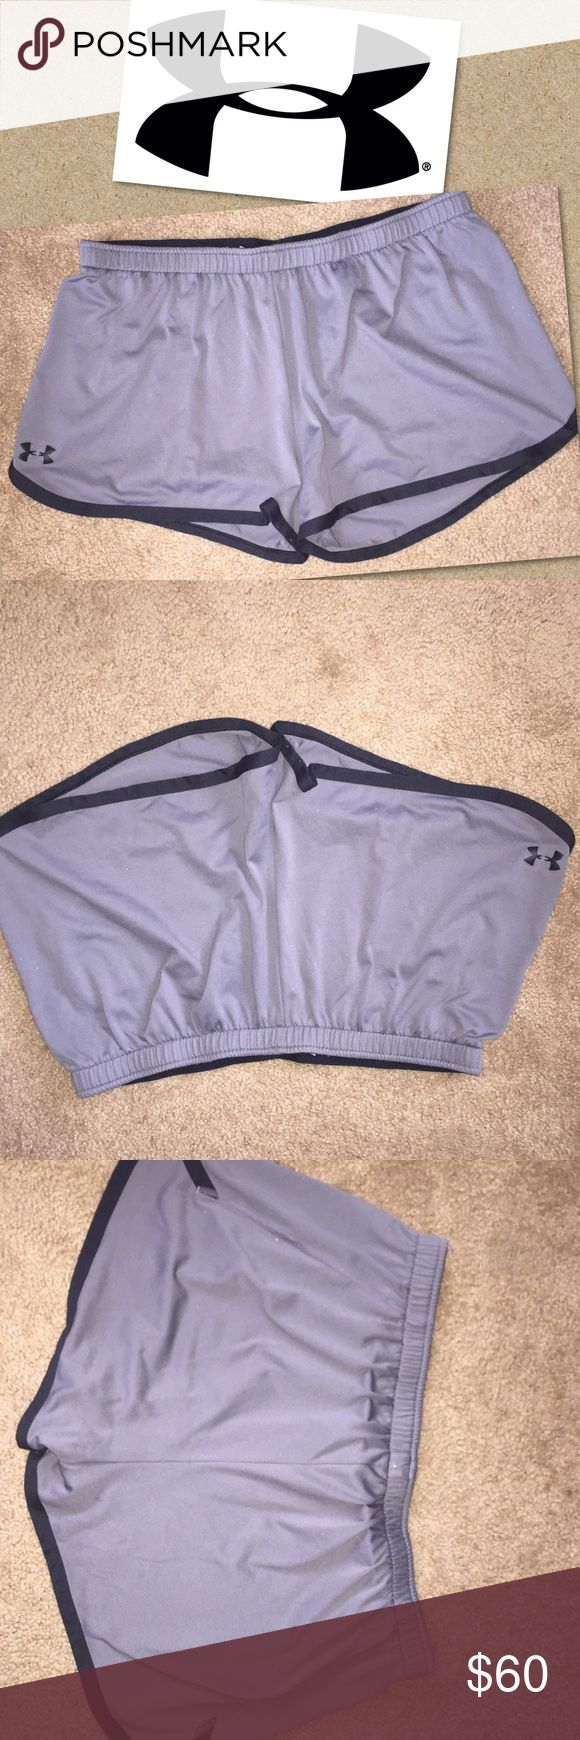 Under Armour running jogging shorts Under Armour  running jogging shorts gray and black size large great condition Under Armour Shorts